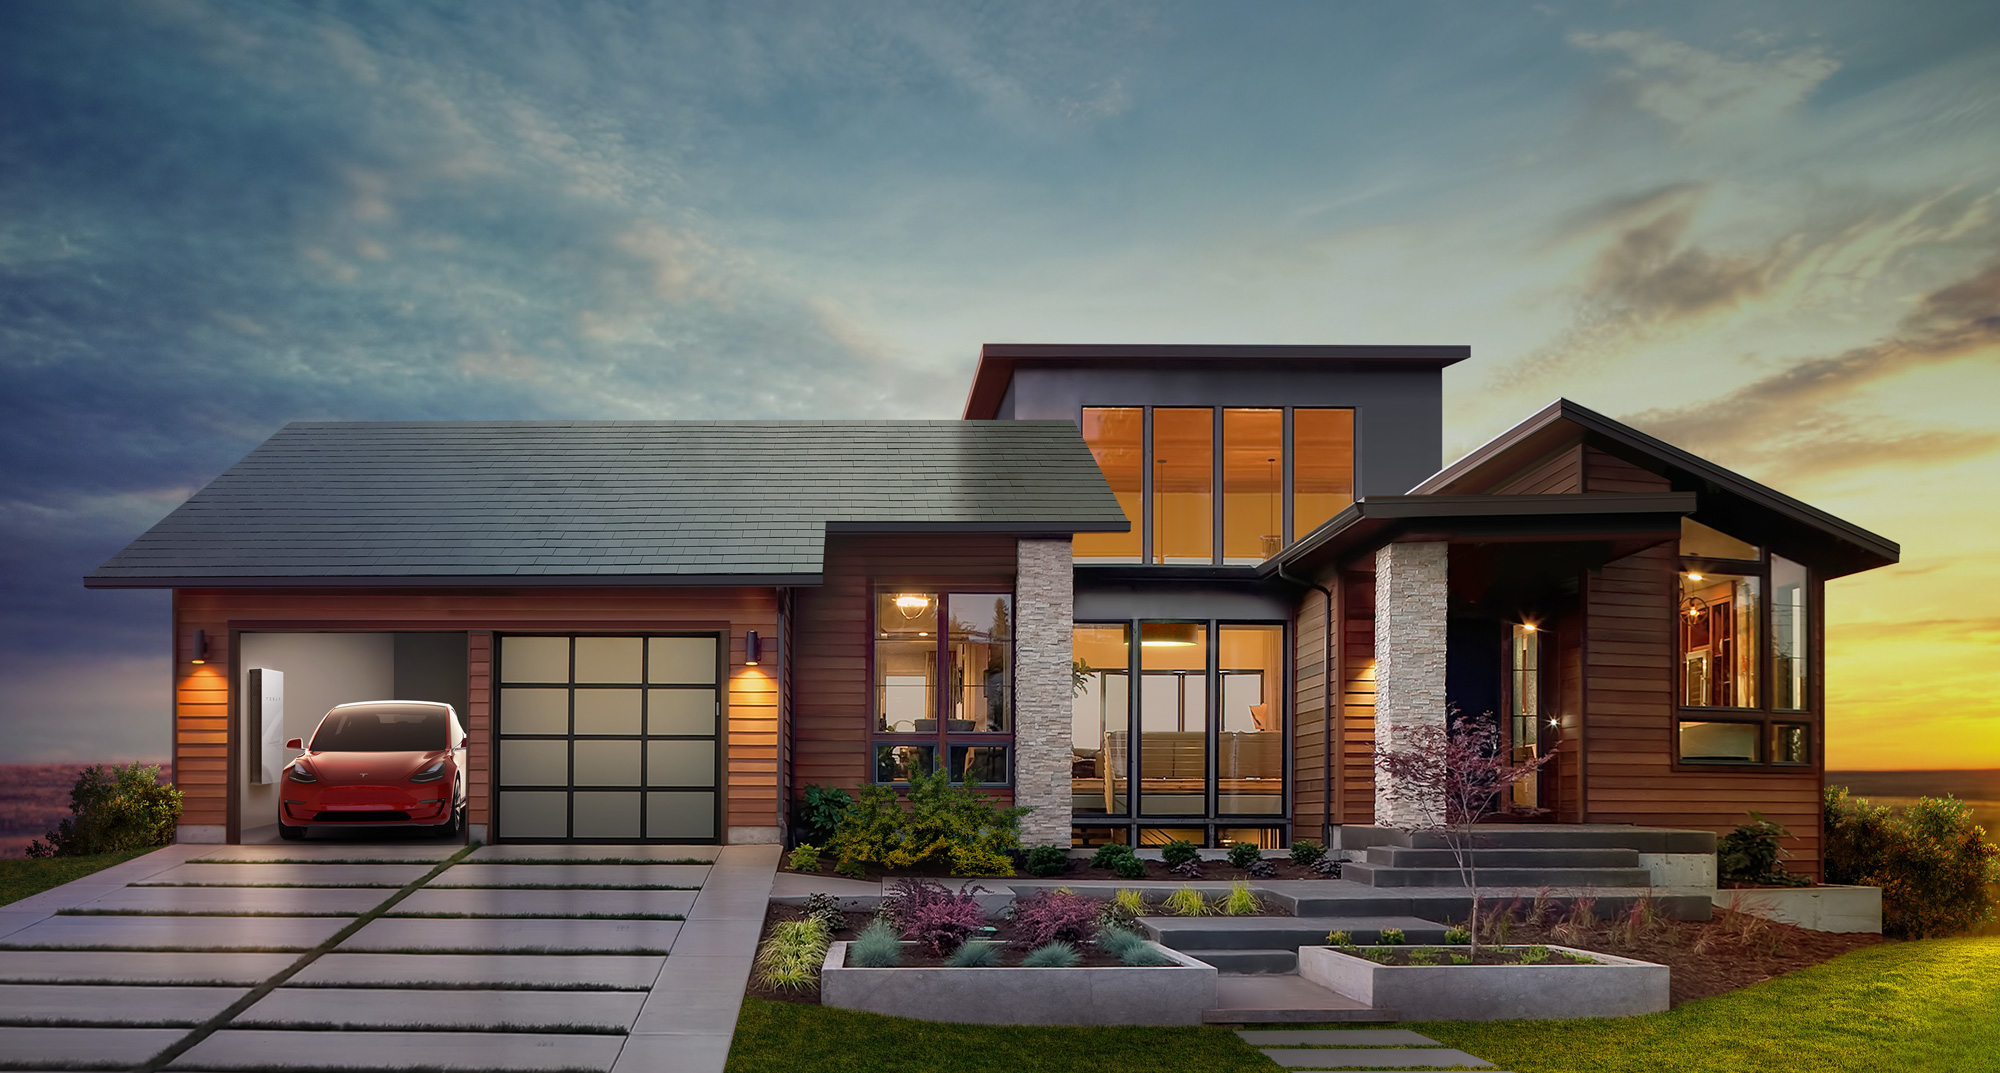 Tesla Solar Roof. Photo Credit: FORBES